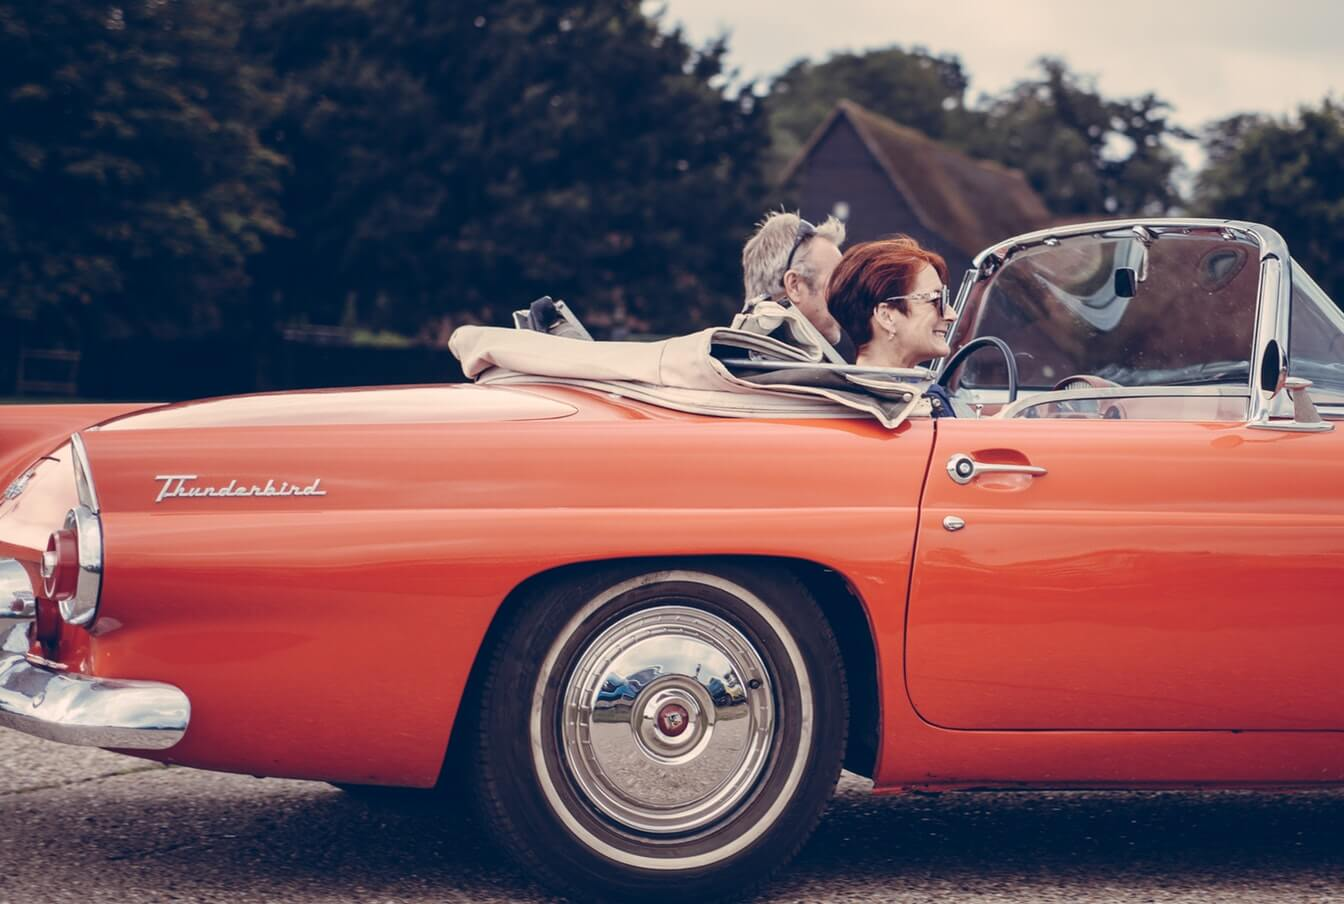 A retired couple smile as they drive in a vintage convertible Thunderbird.